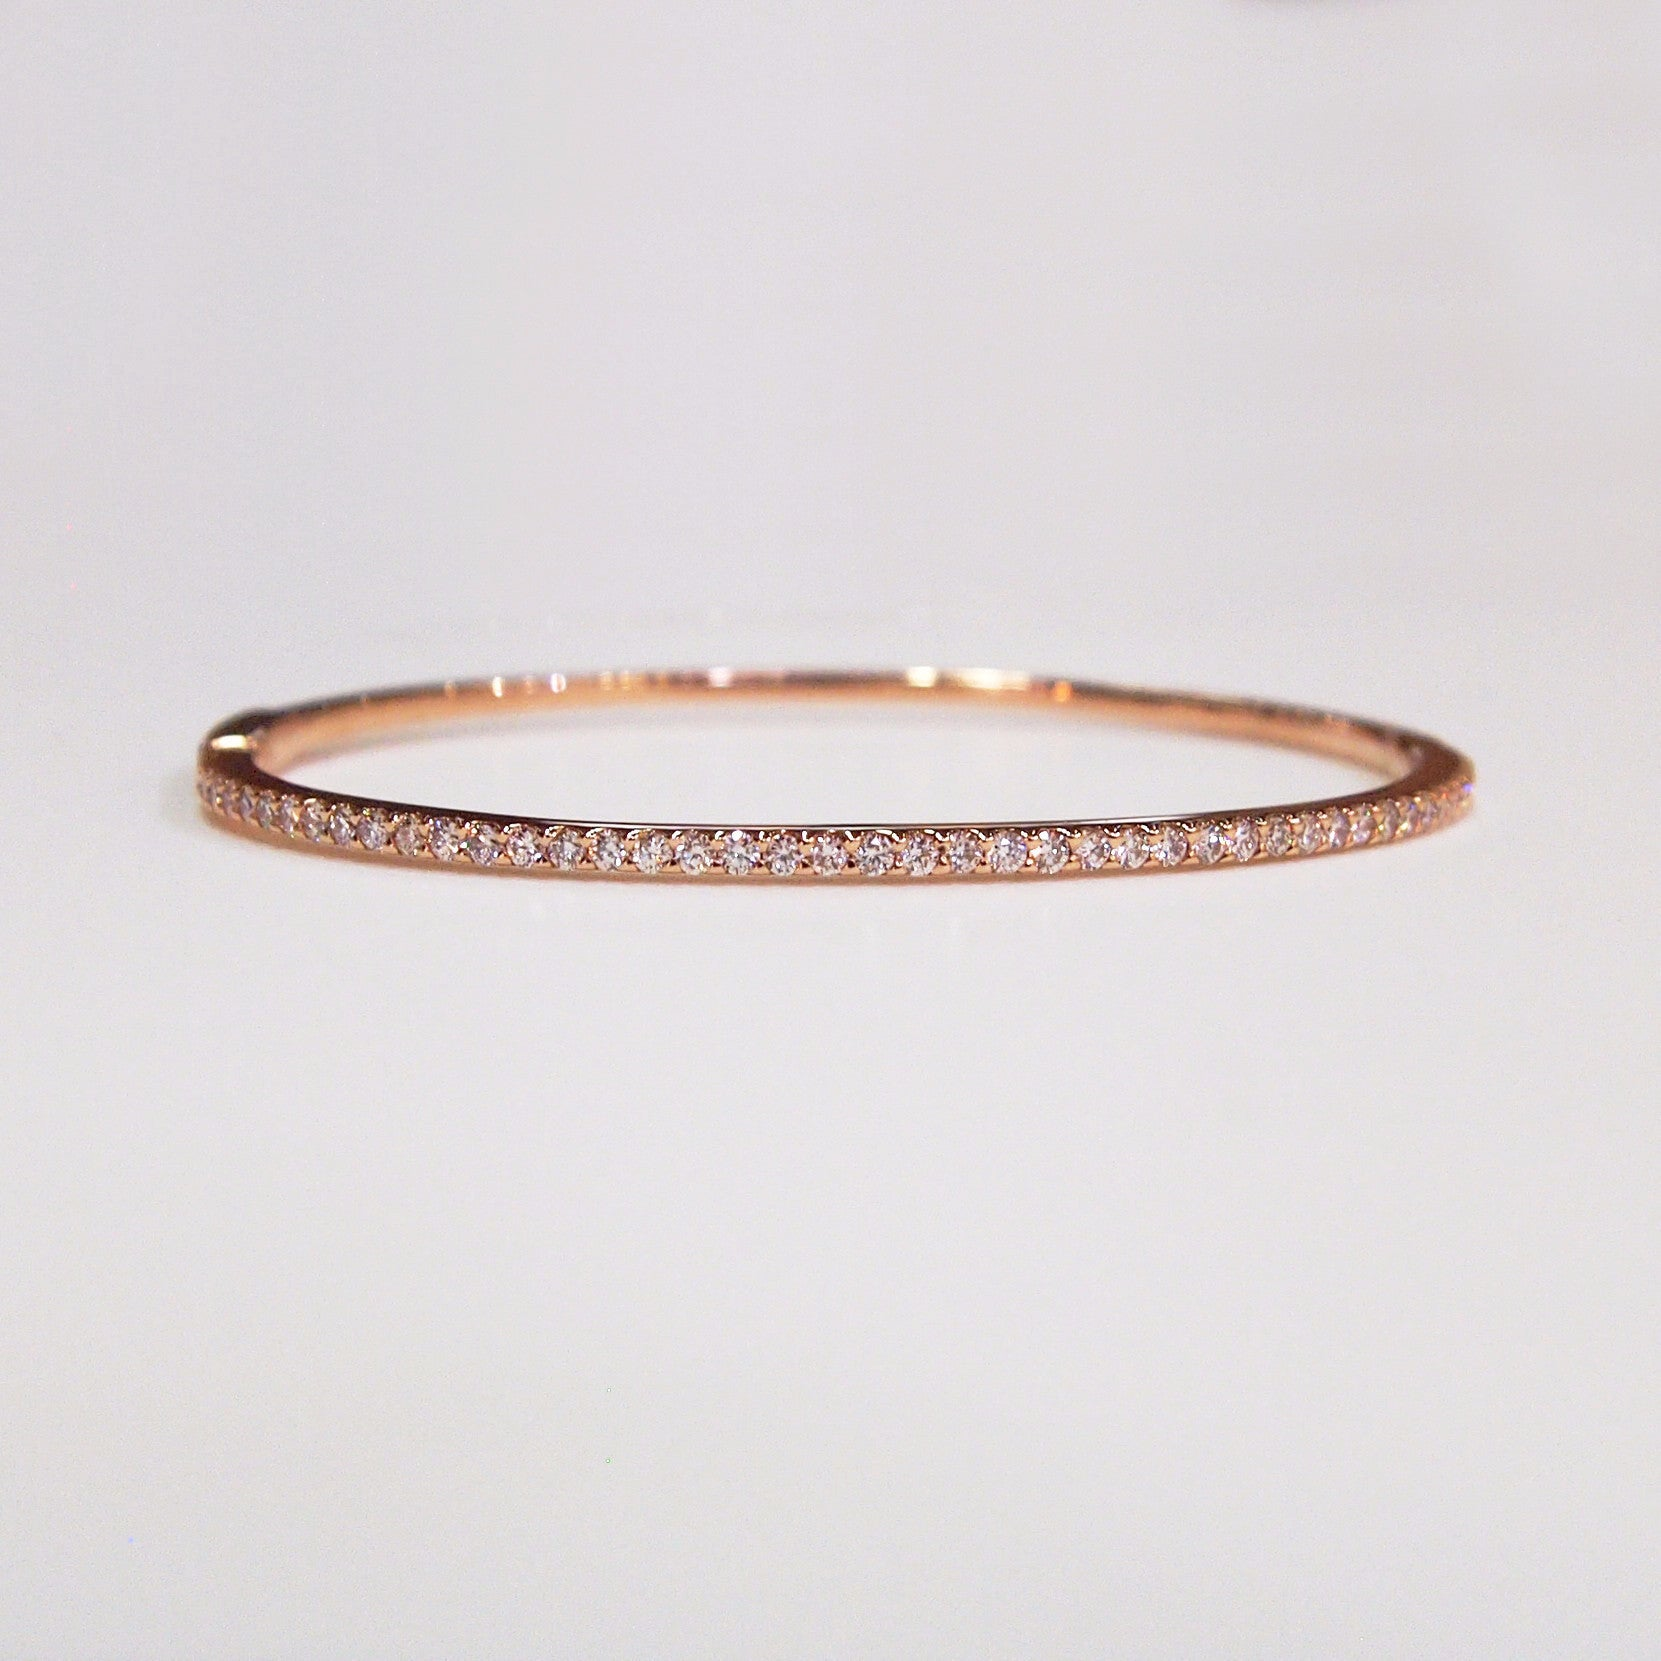 bangles bangle eve bracelet s cz rose plate set engravable gold plated channel